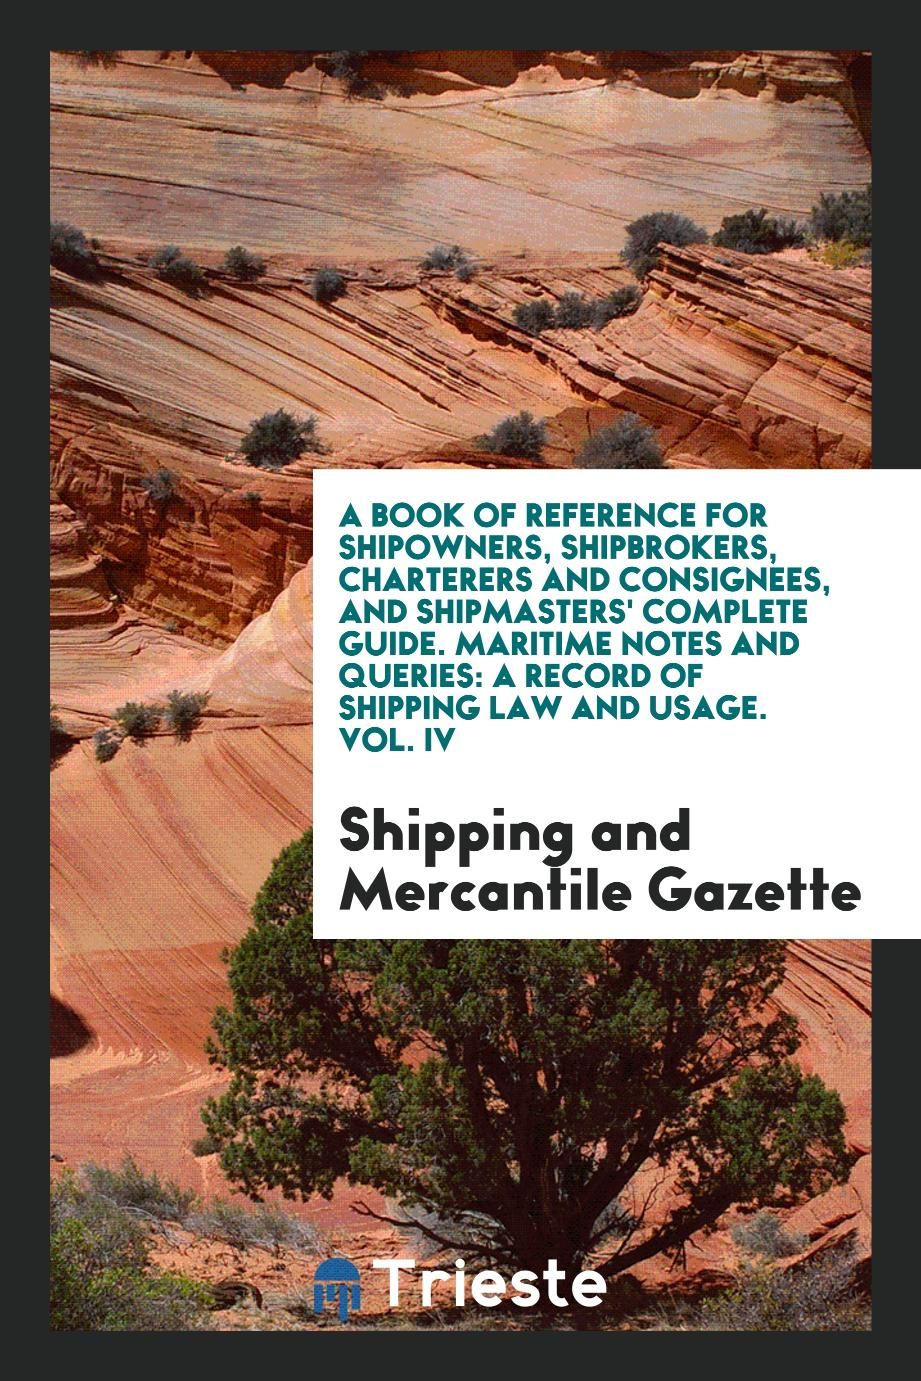 A Book of Reference for Shipowners, Shipbrokers, Charterers and Consignees, and Shipmasters' Complete Guide. Maritime Notes and Queries: A Record of Shipping Law and Usage. Vol. IV